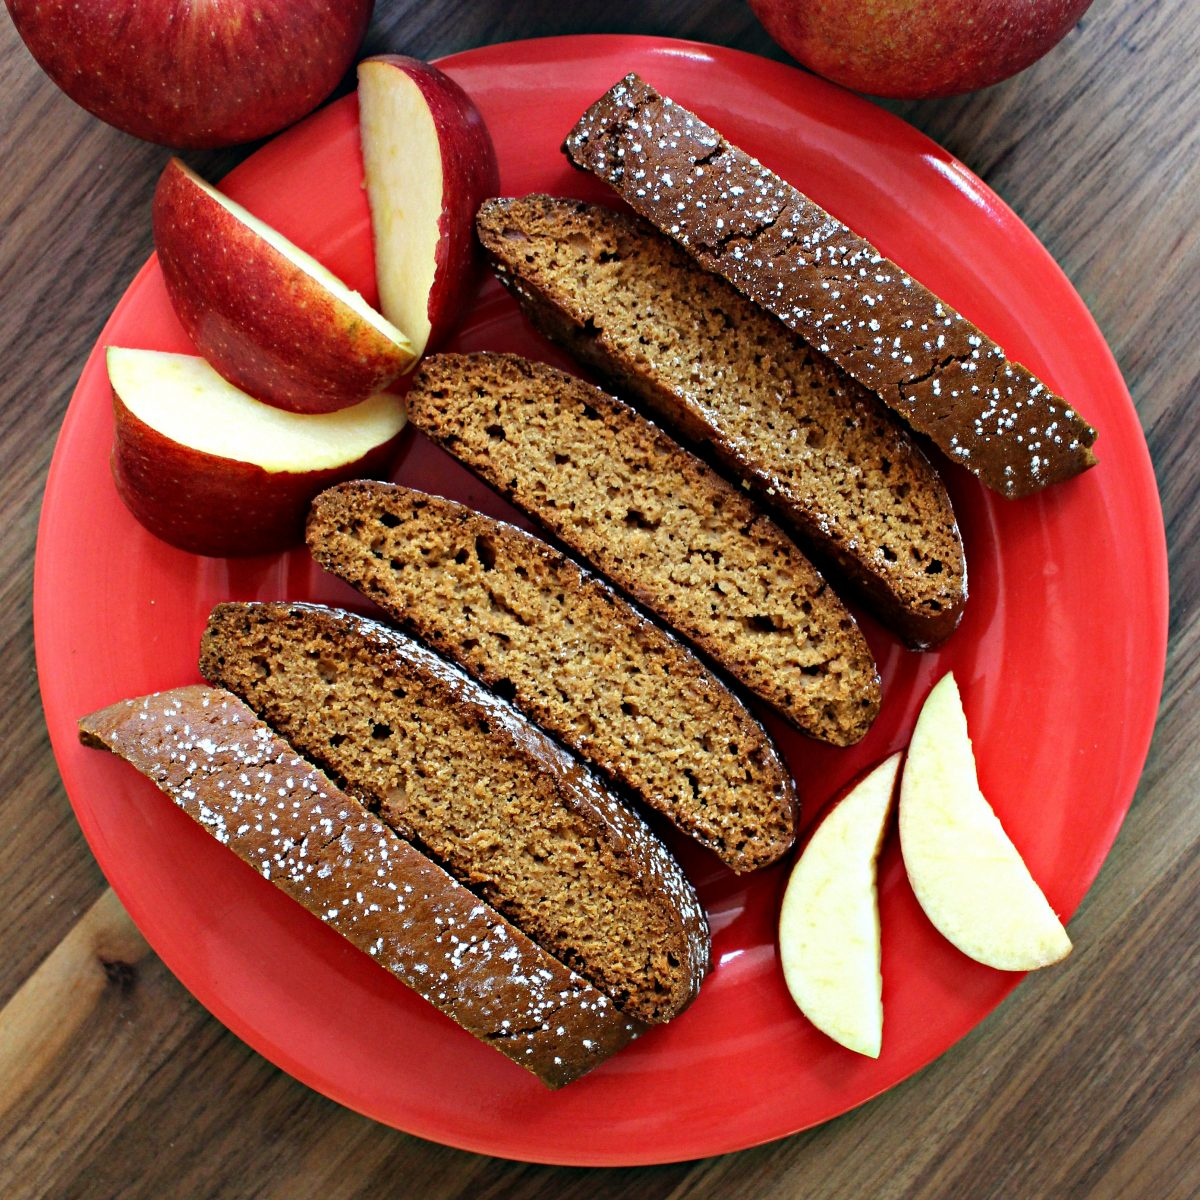 Biscotti on a red plate with apple slices.